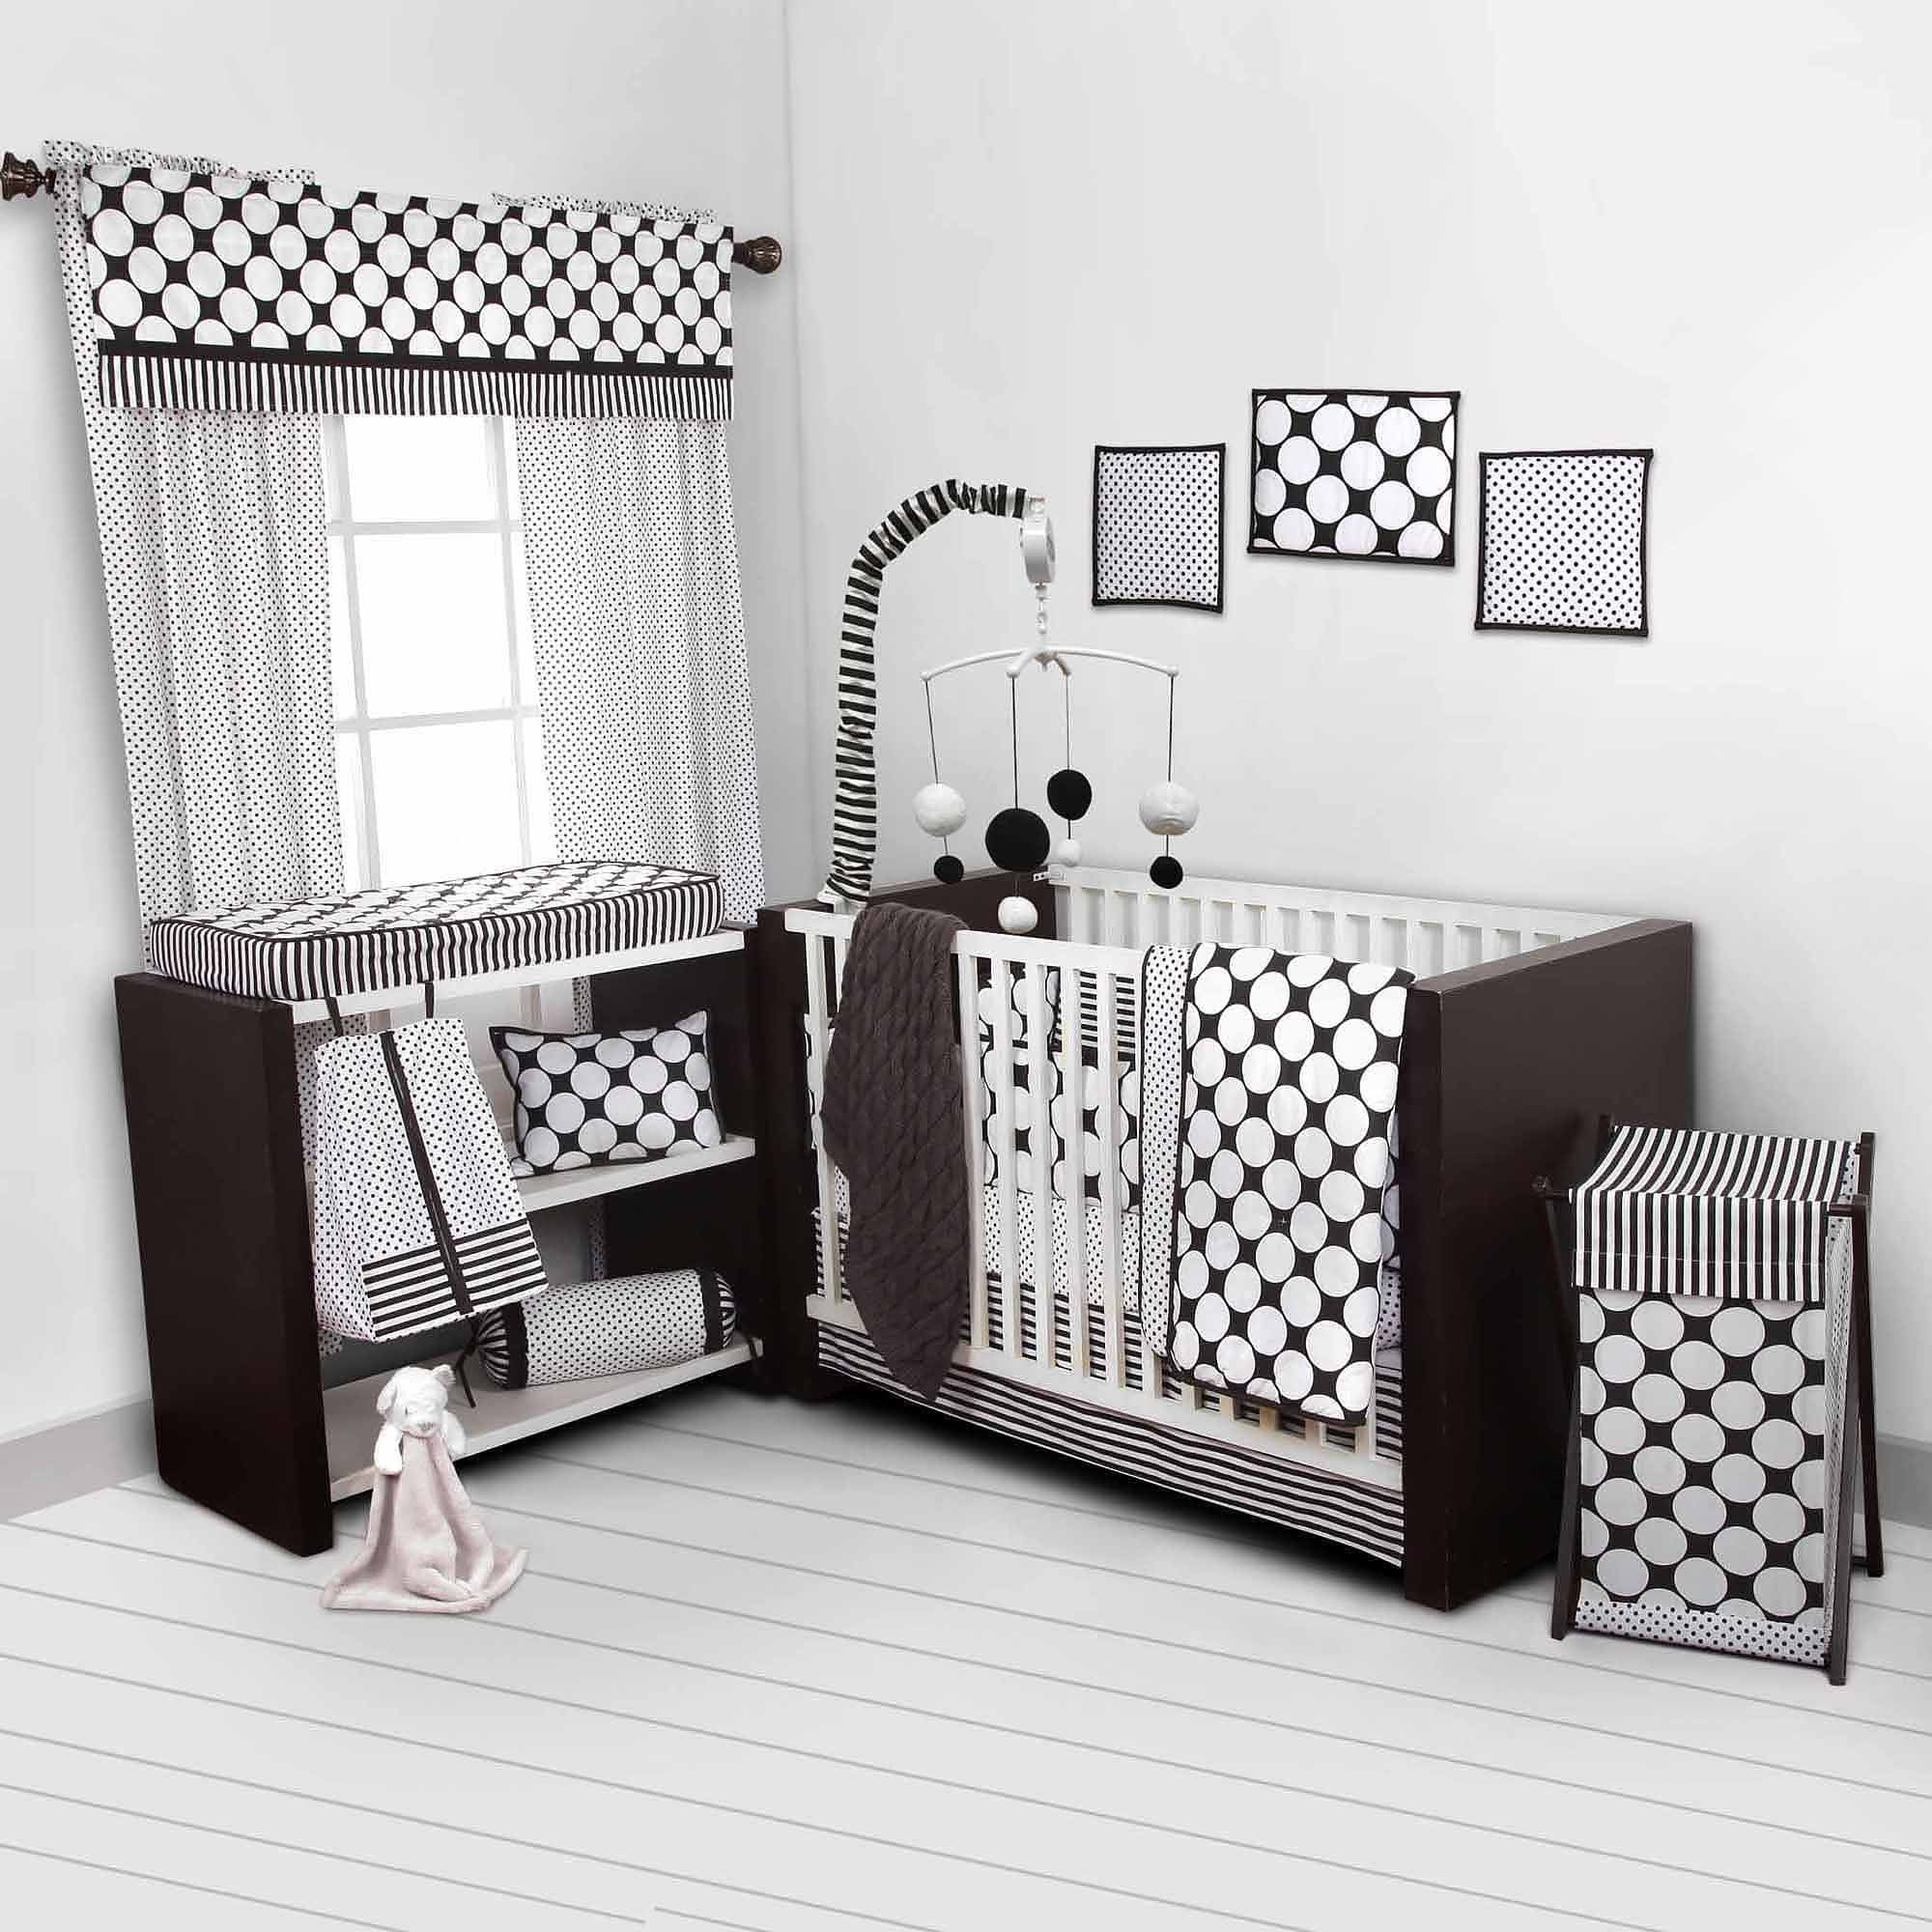 size gray dreaded crib inspirations full bedding elsa red black pink image amazon sheets of and white set king checkered modern sets setgray com